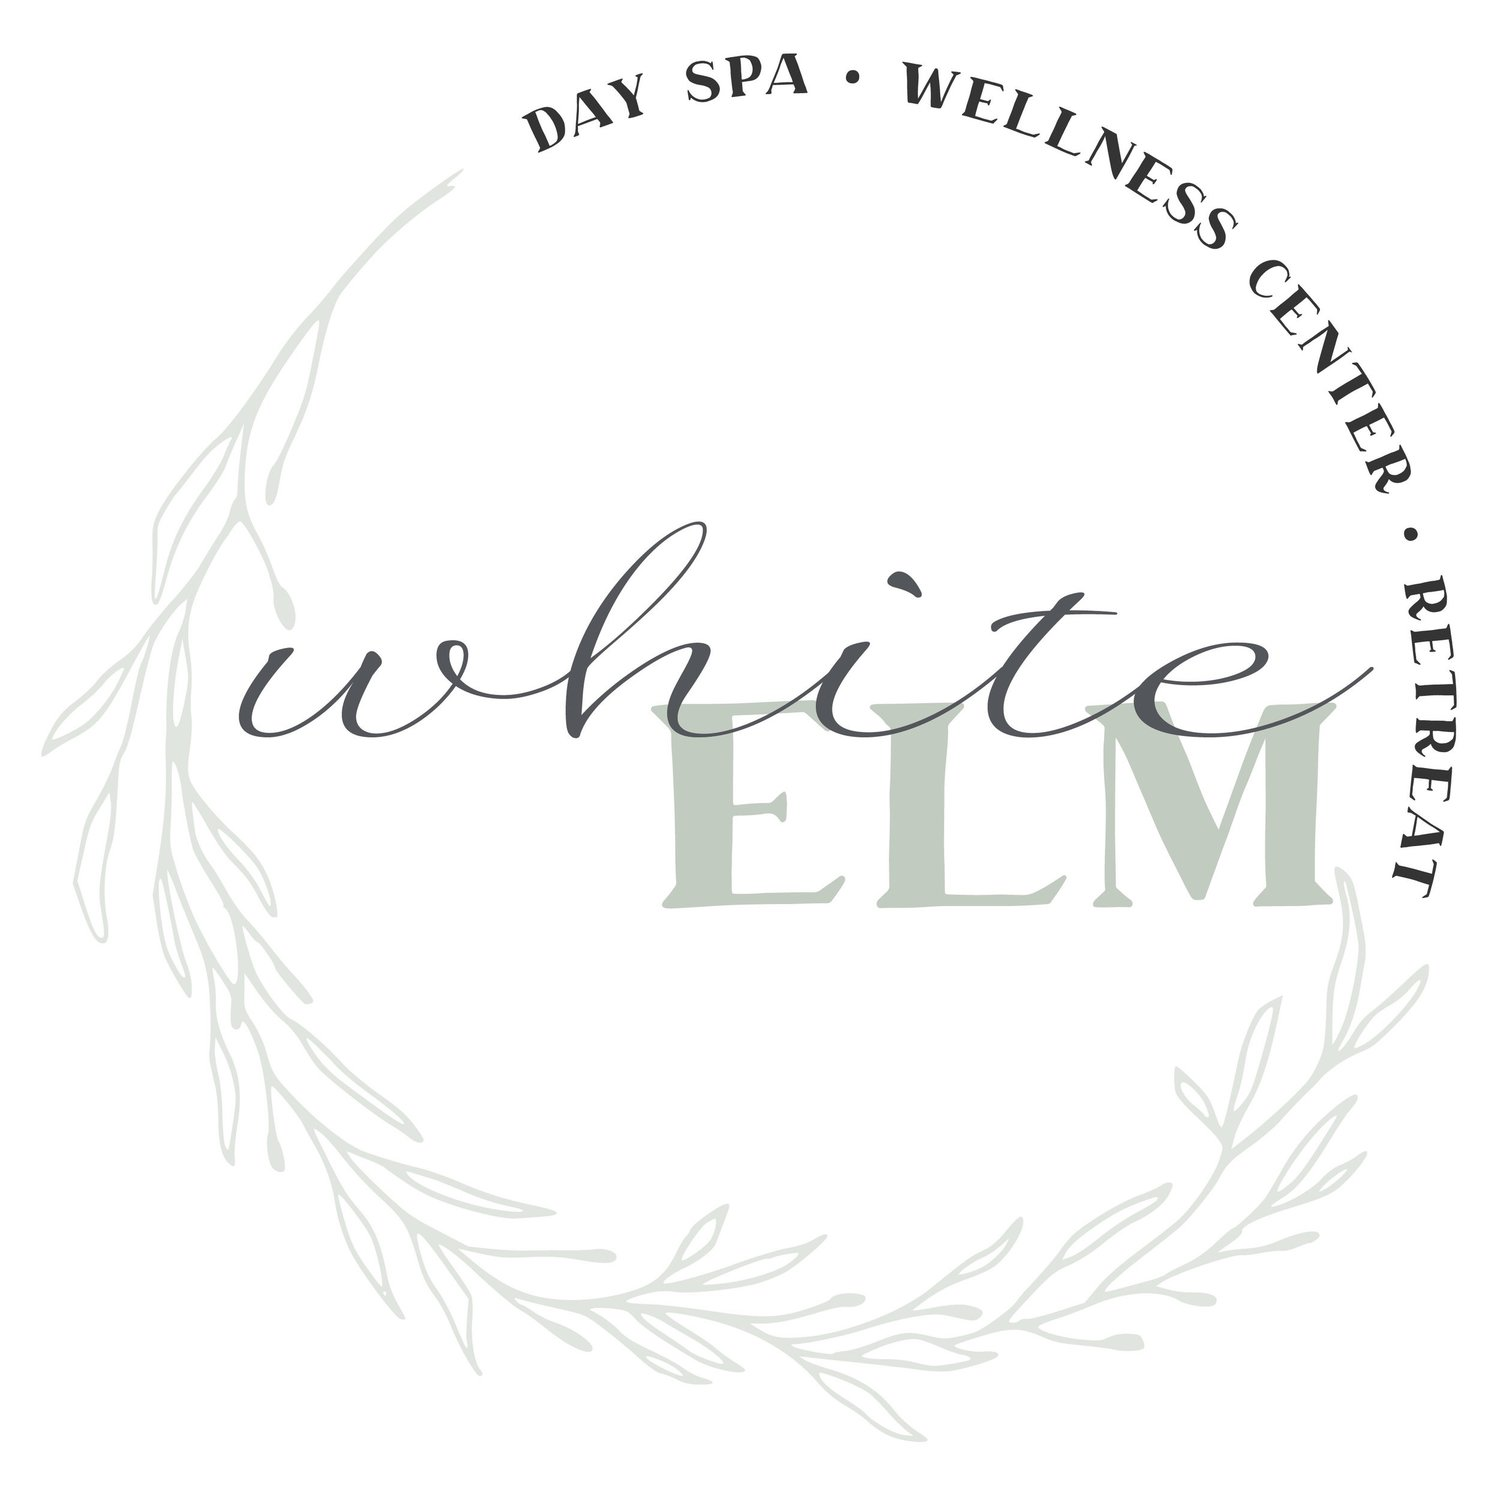 White Elm Day Spa